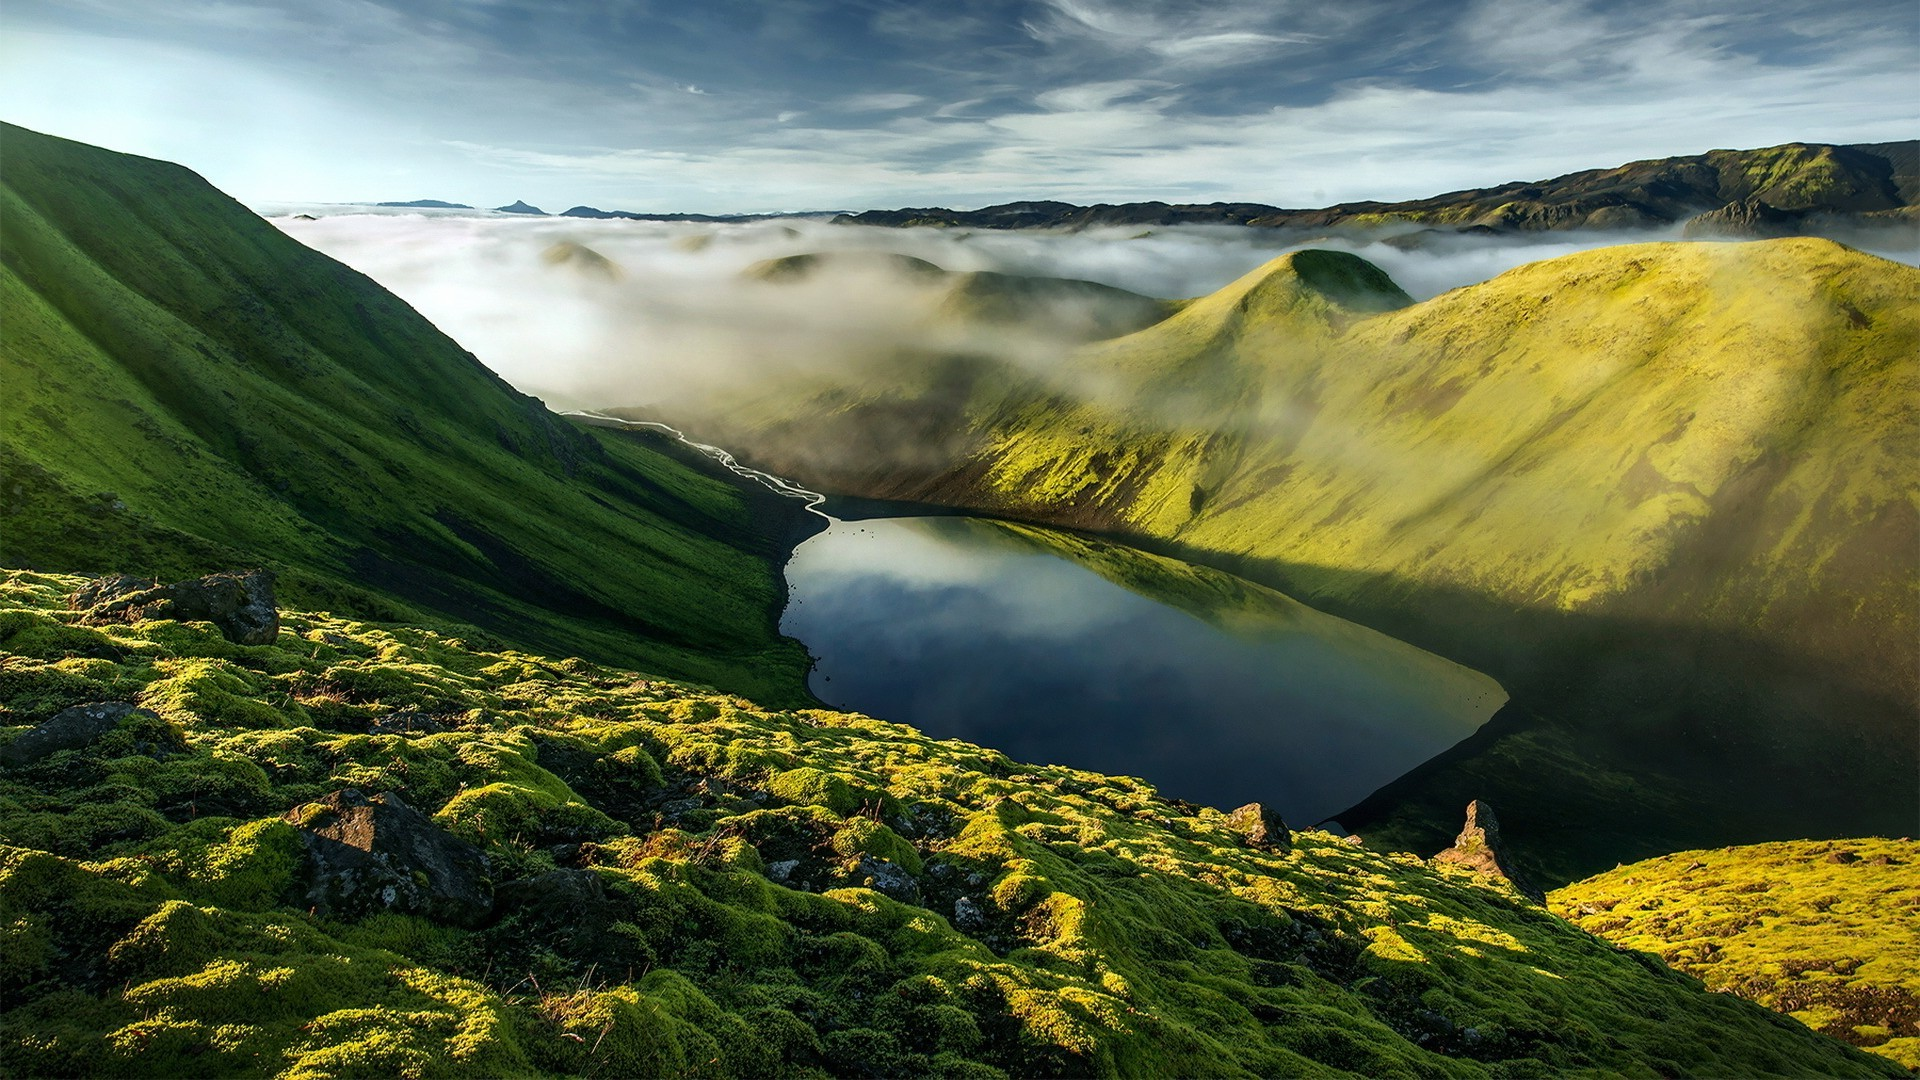 3d Wallpapers For Home Screen Nature Landscape Mountains Iceland Rock Hills Clouds